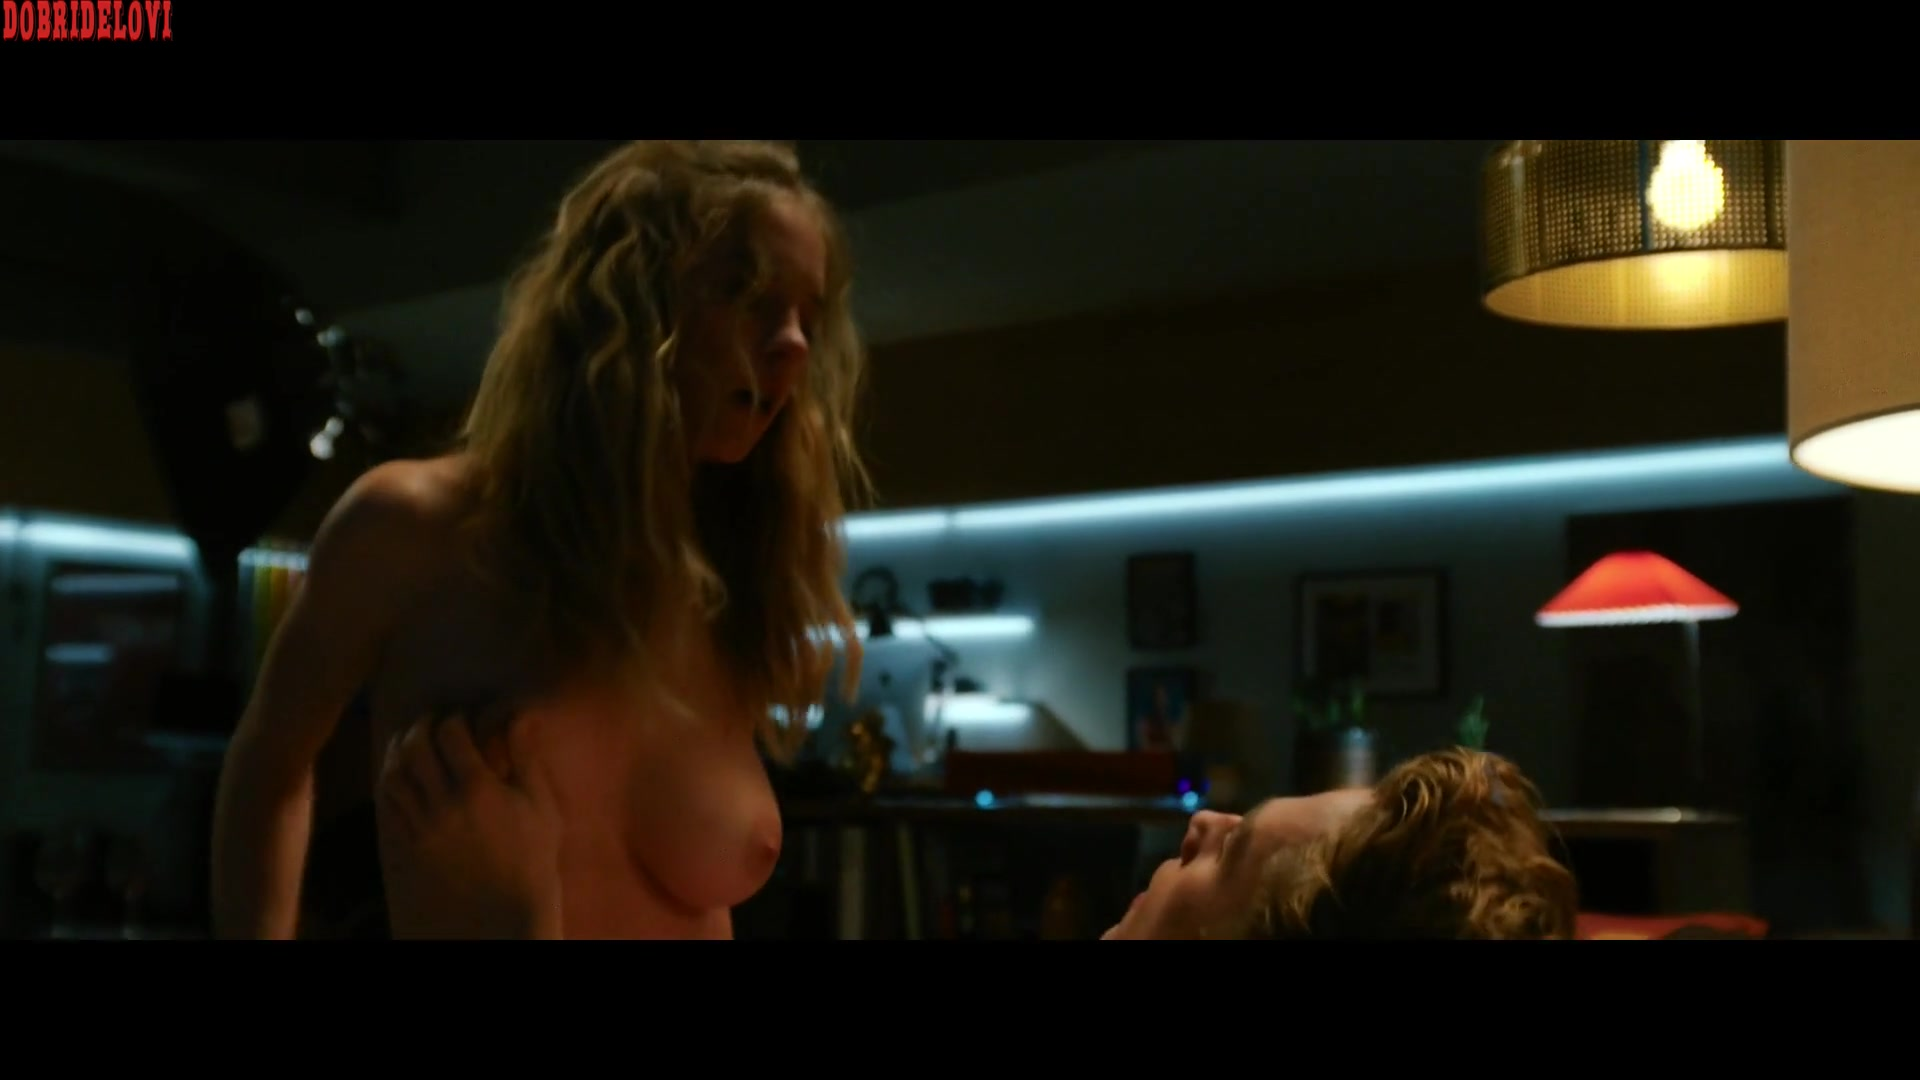 Sydney Sweeney gets oral sex and rides Ben Hardy in the couch